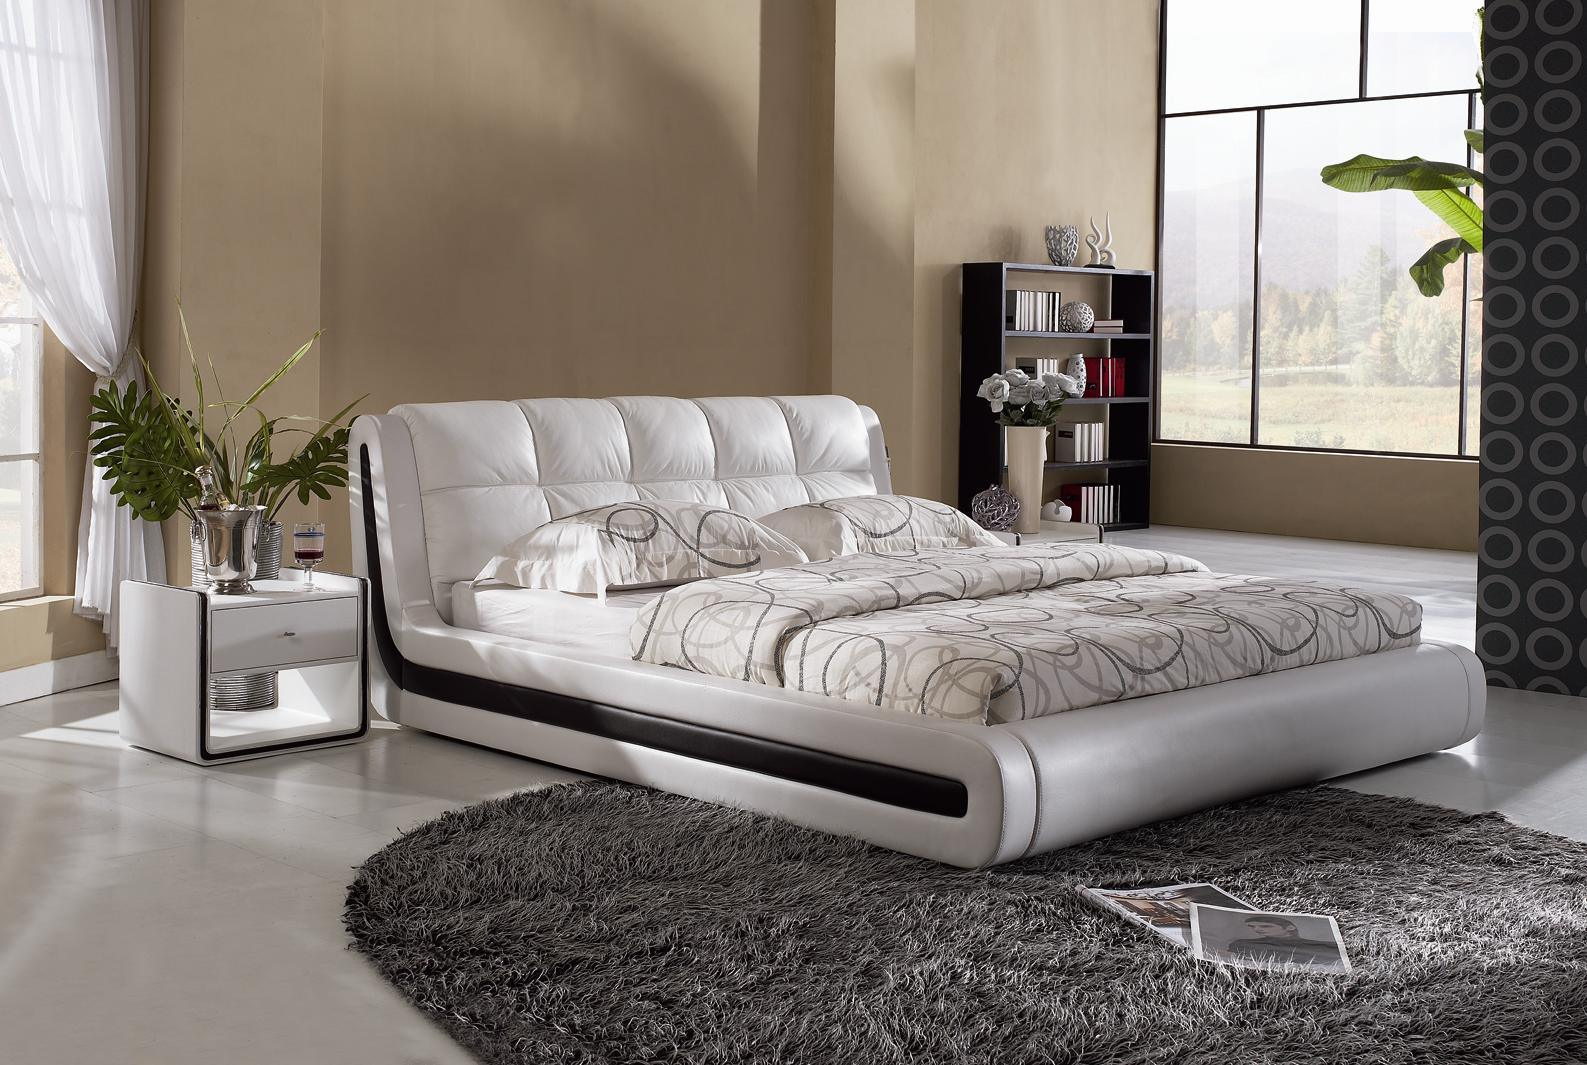 Modern beds design pictures simple home decoration for Contemporary bed designs